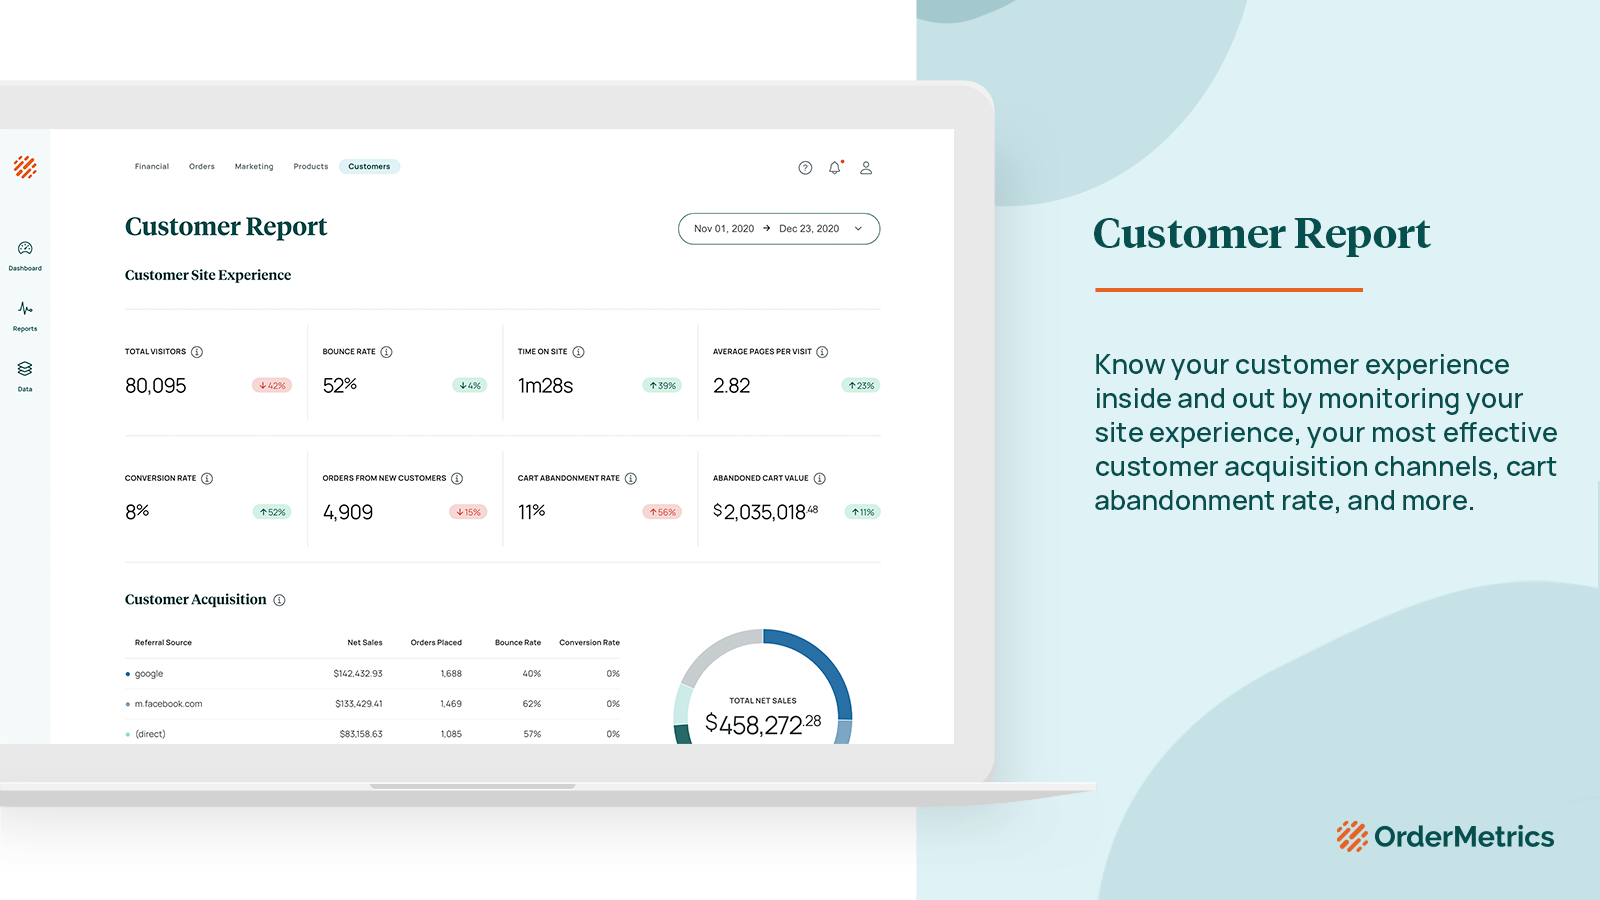 Track return on ad spend, LTV, ad spend per order, and more.